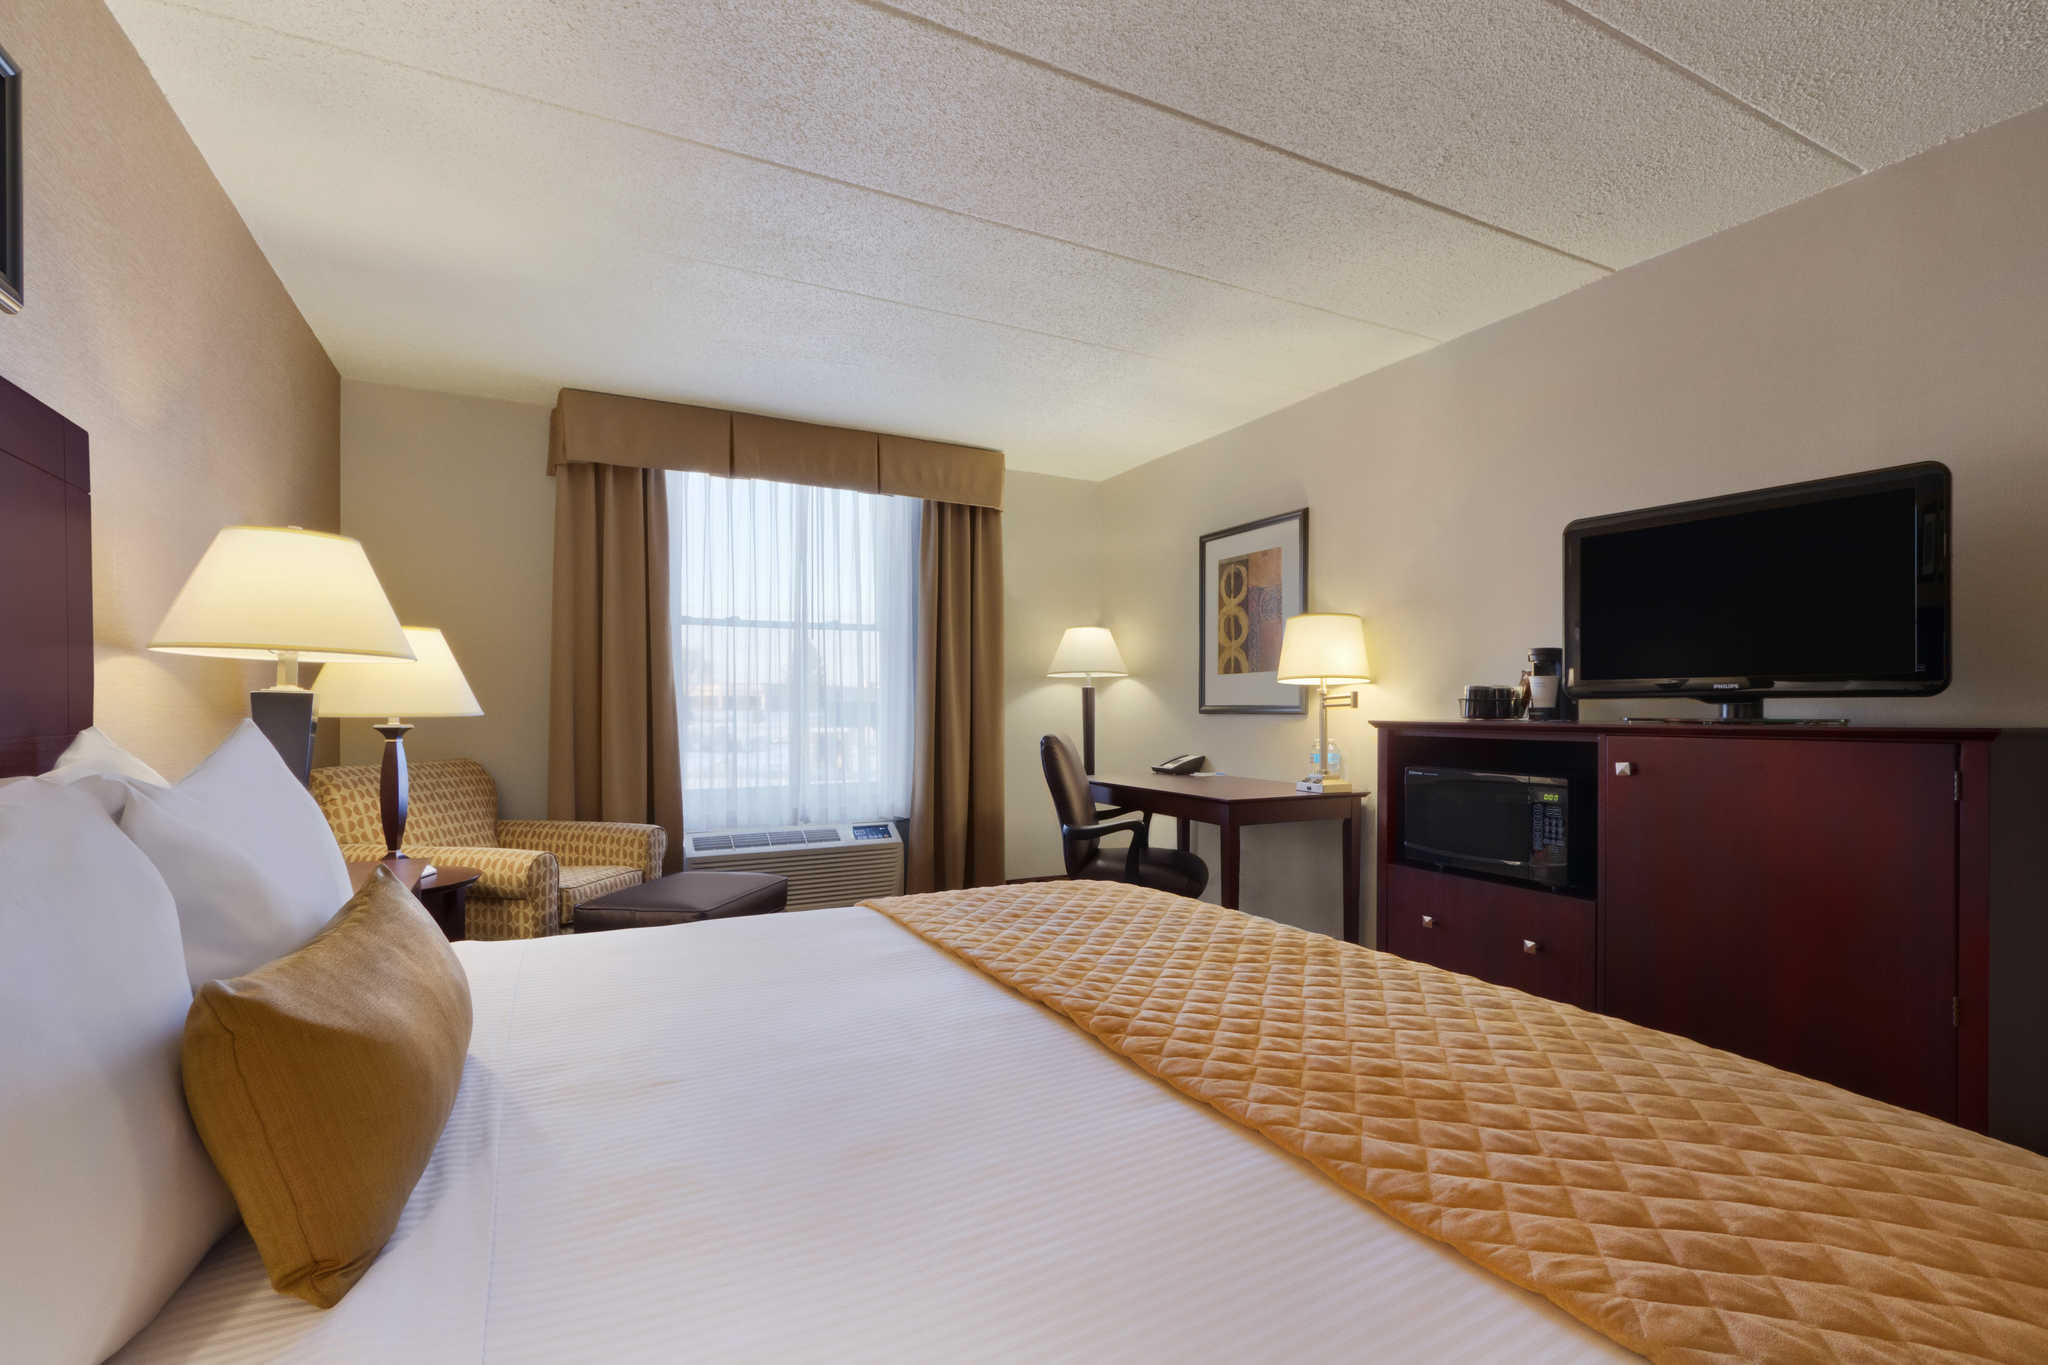 Clarion Hotel image 1